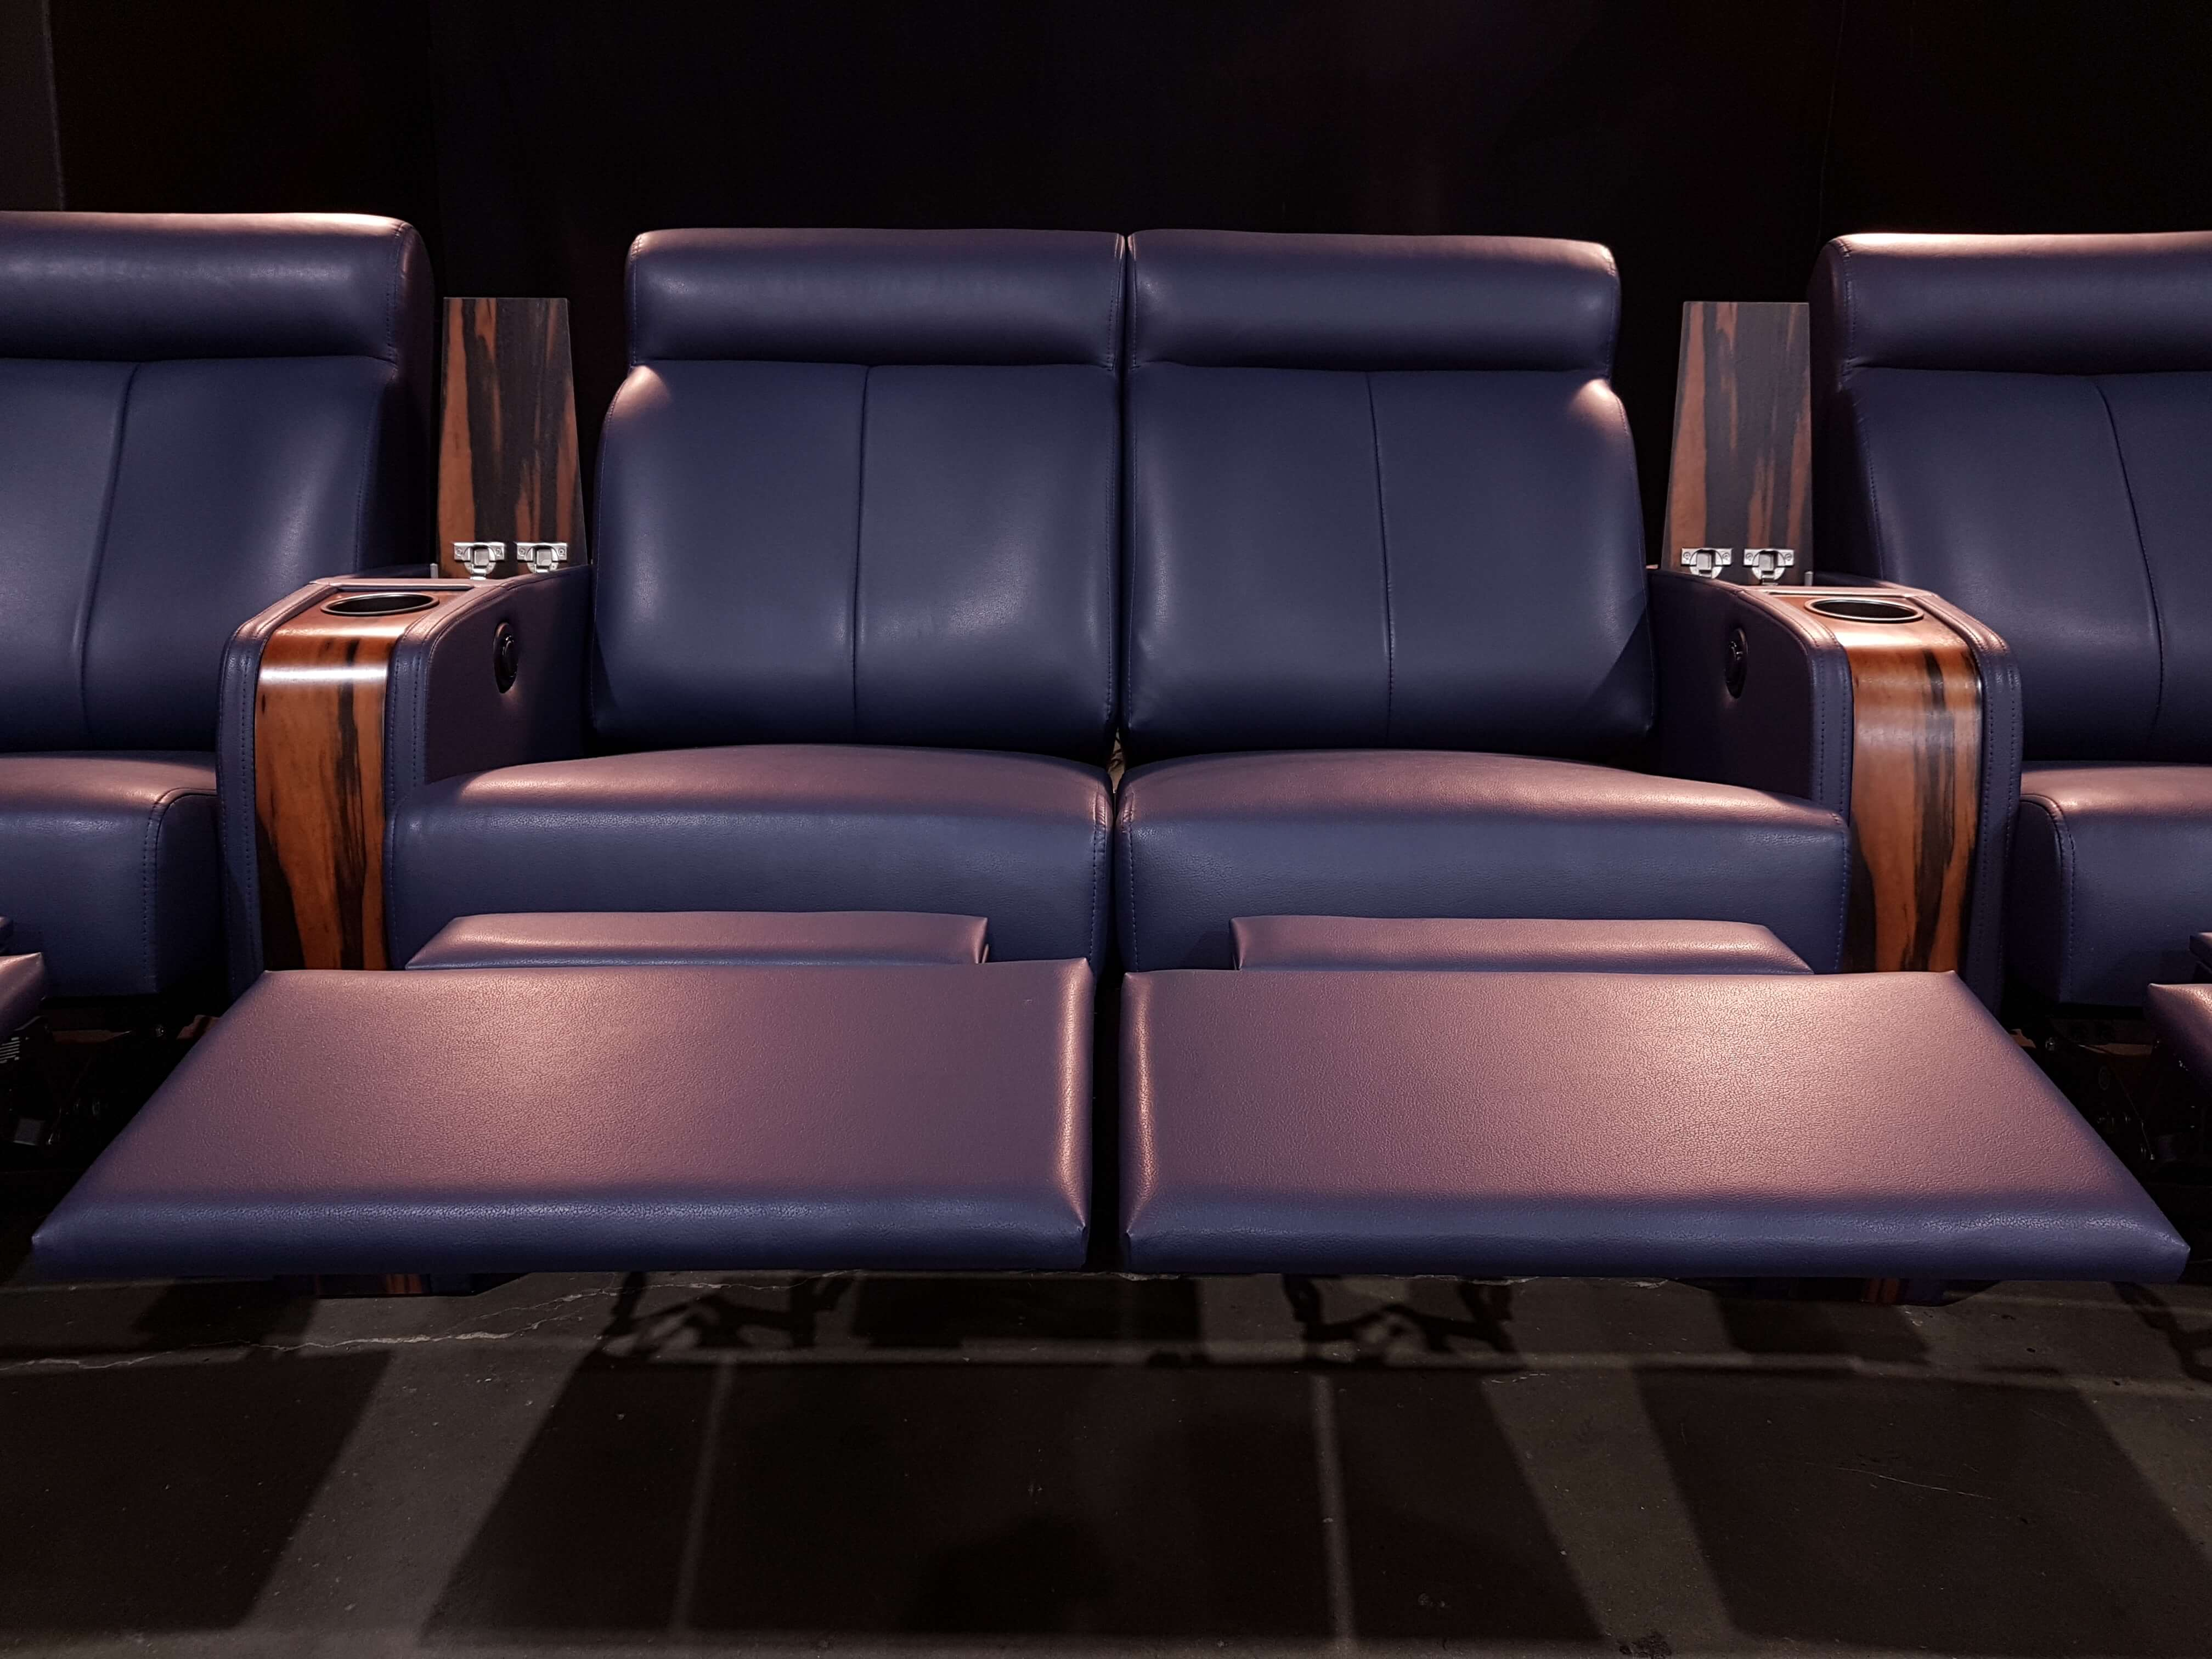 home_theater_seats j9_blue_ (2)